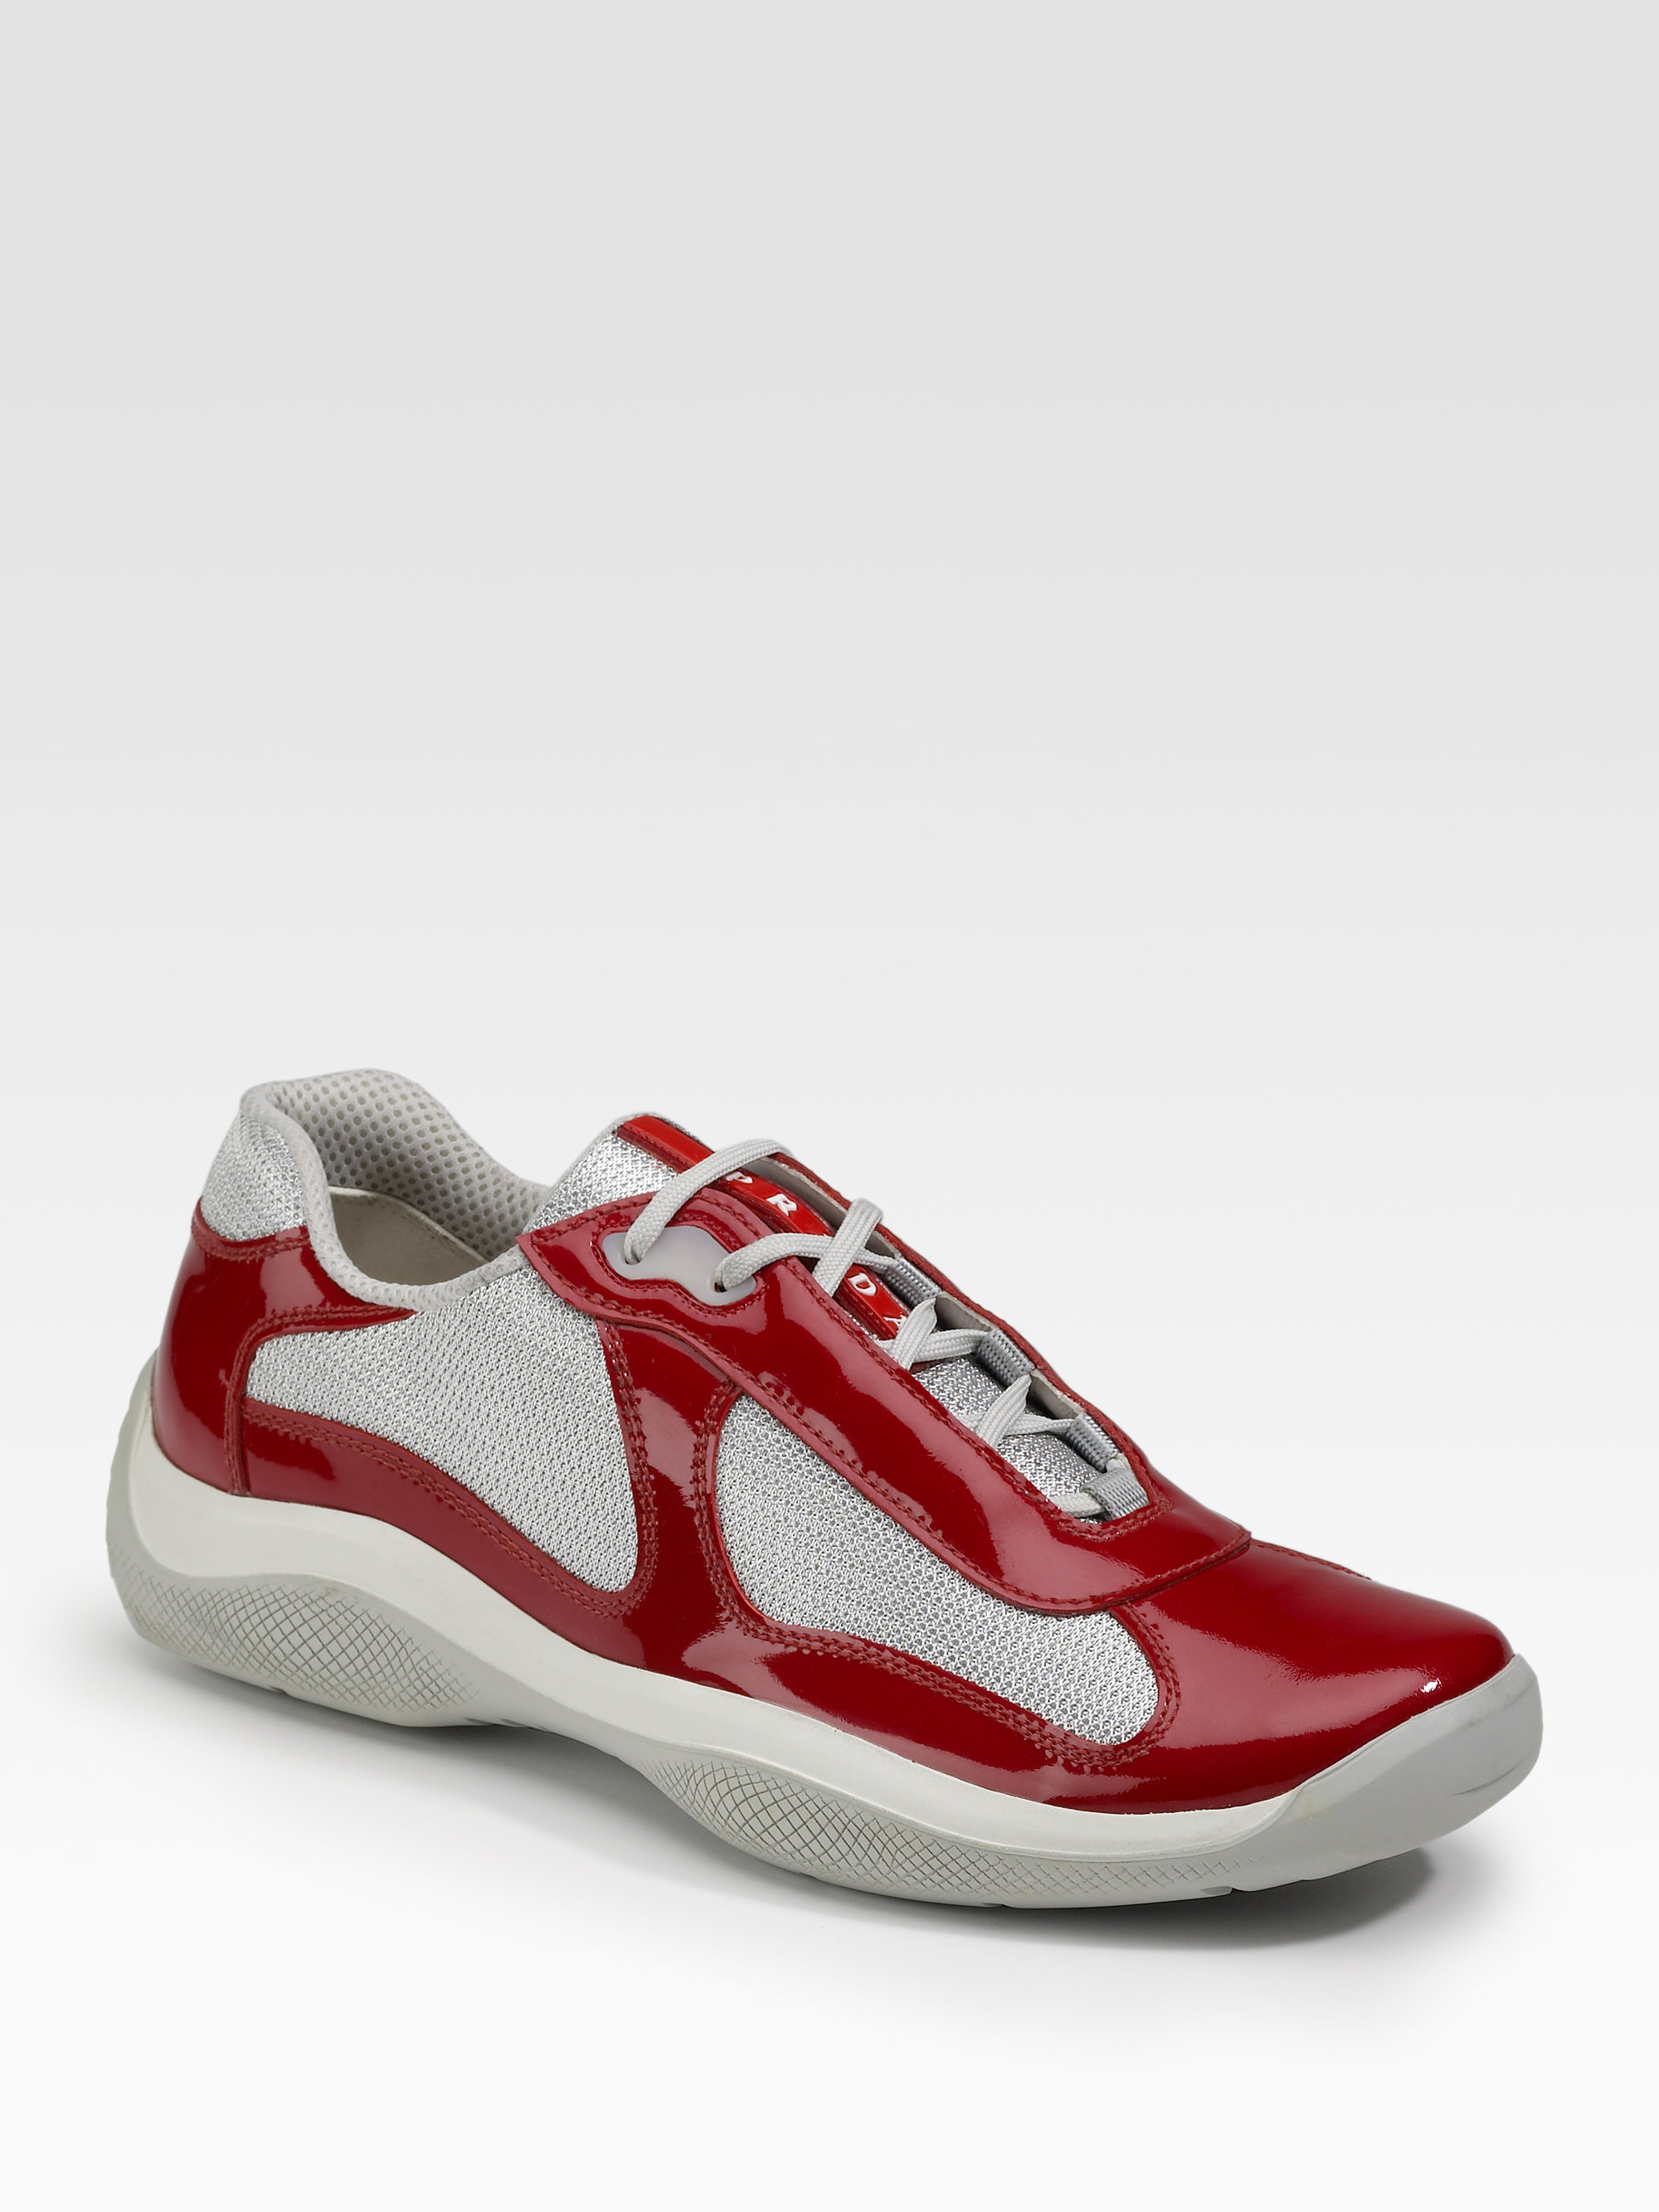 Men For In Sneakers Prada Lyst Patent Red 2eIWEHYbD9